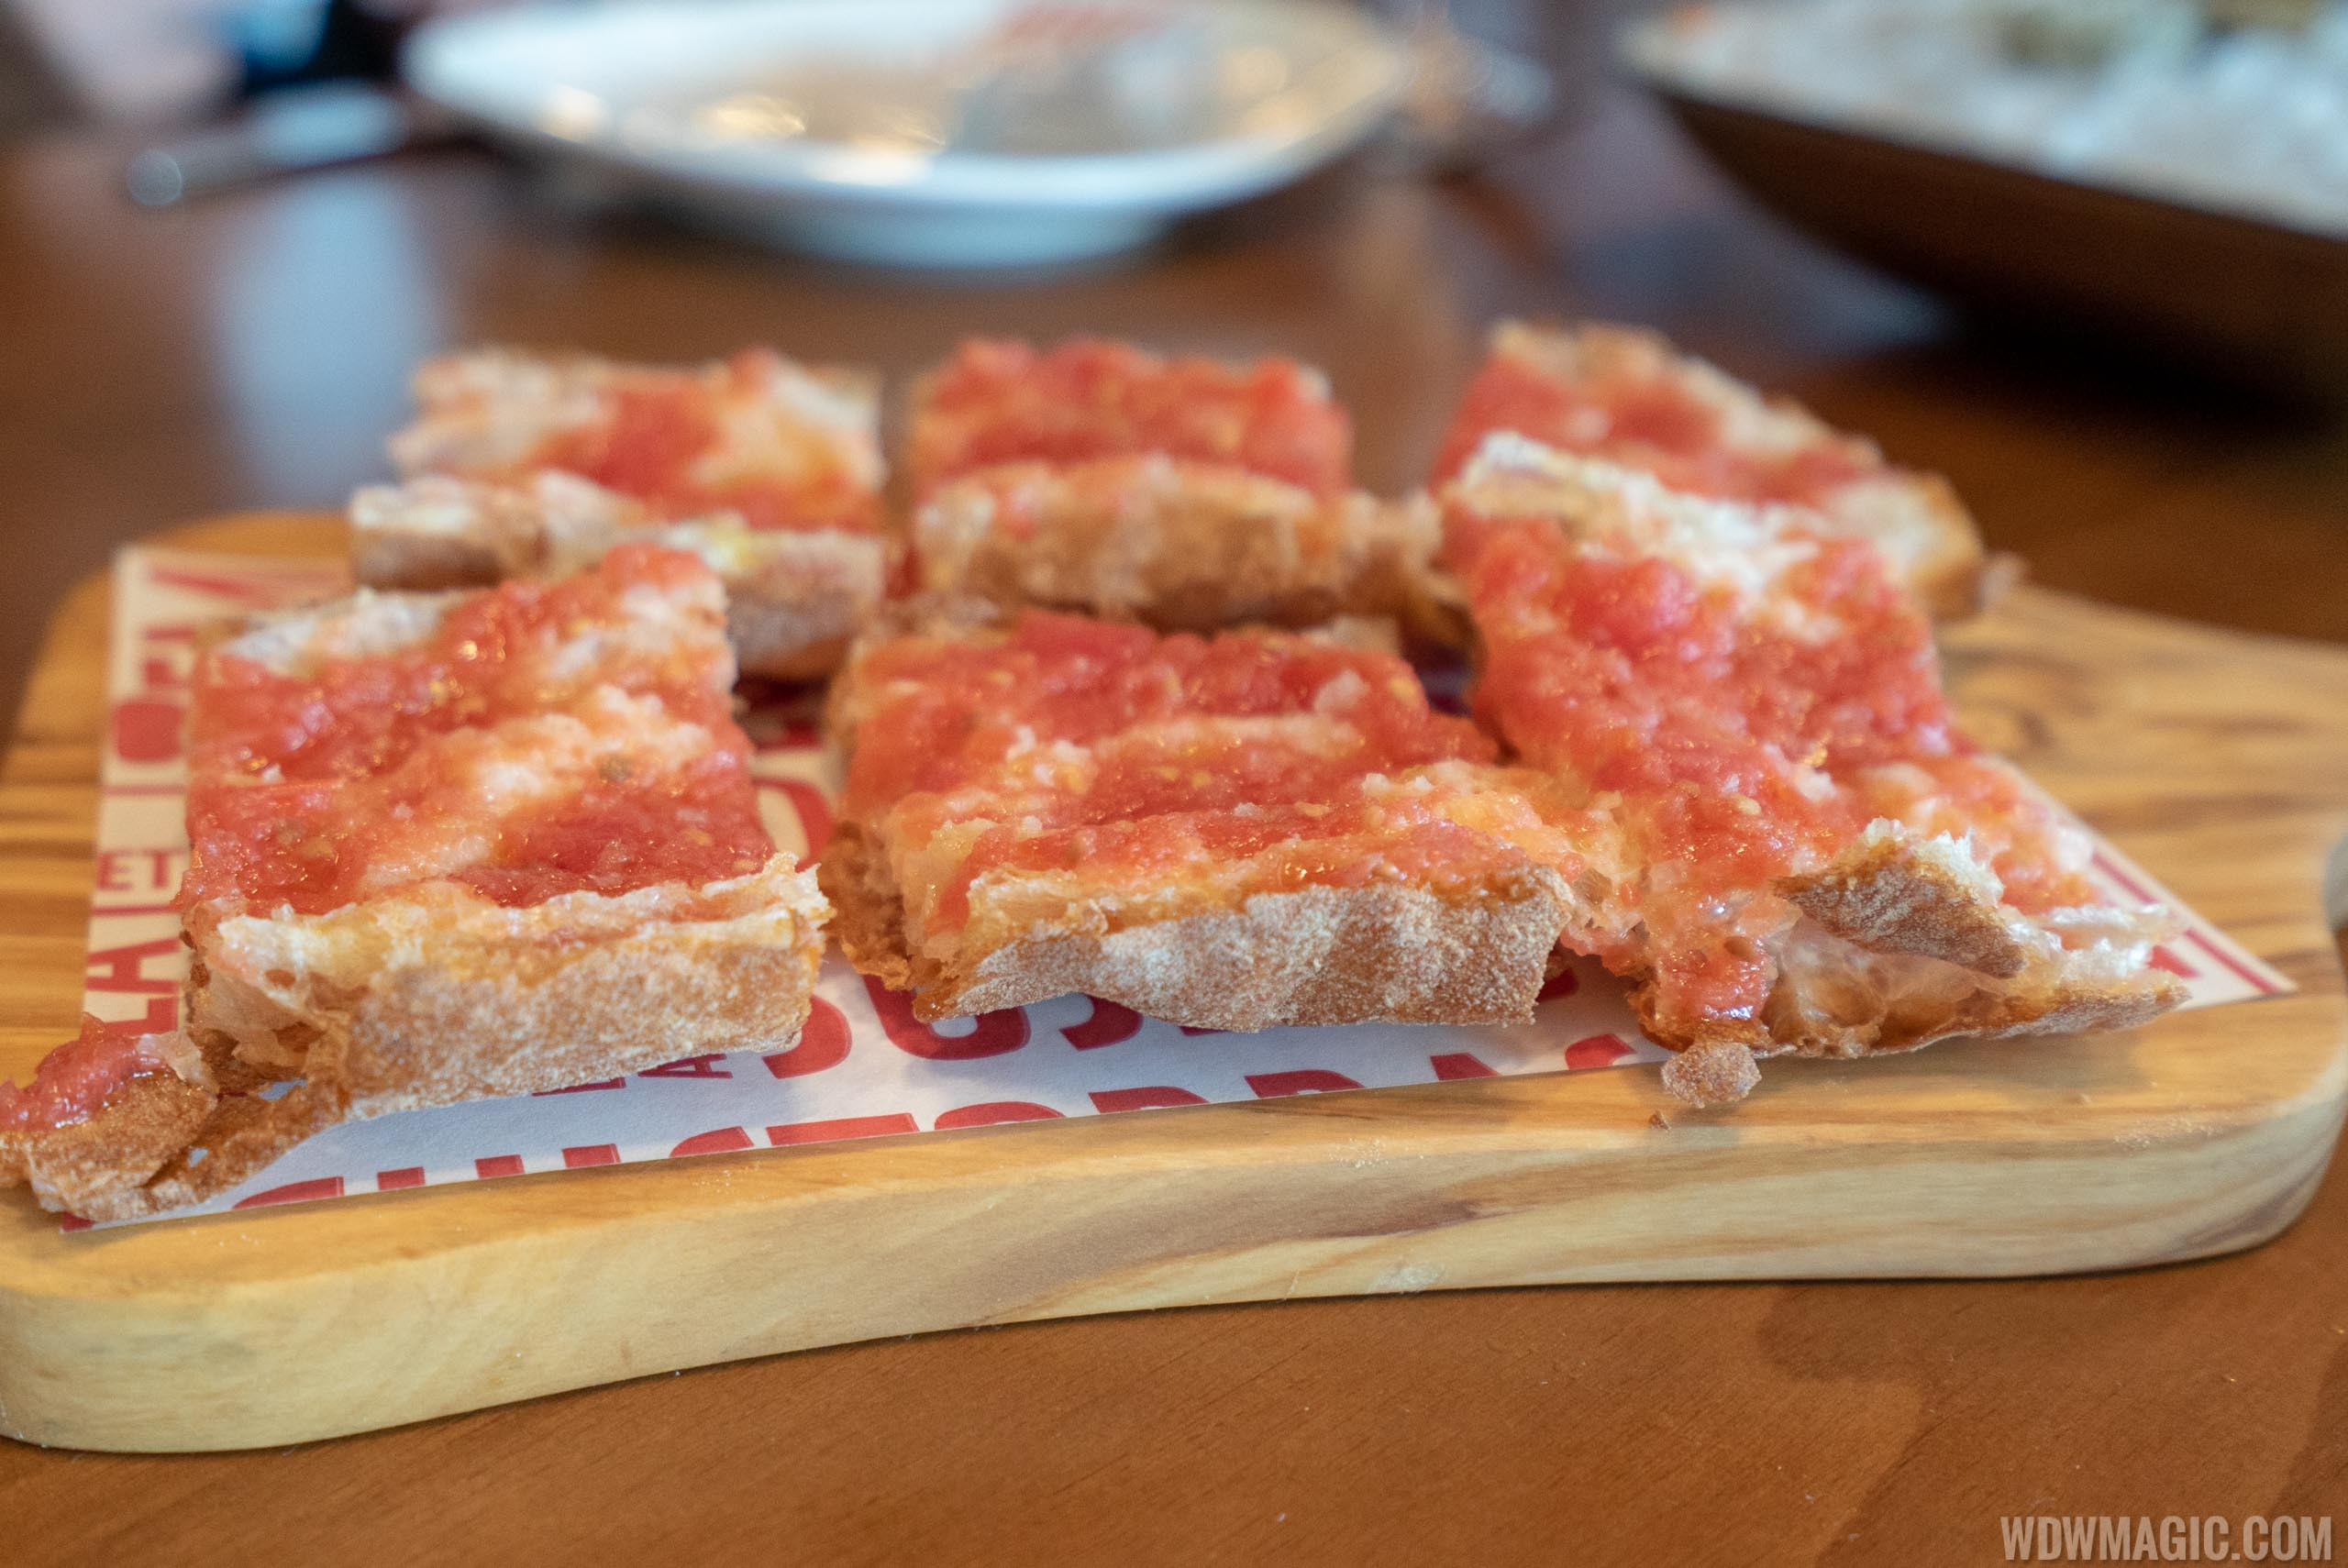 Chef's tasting menu: José's Way - Toasted slices of uniquely crispy and ethereal bread brushed with fresh tomato